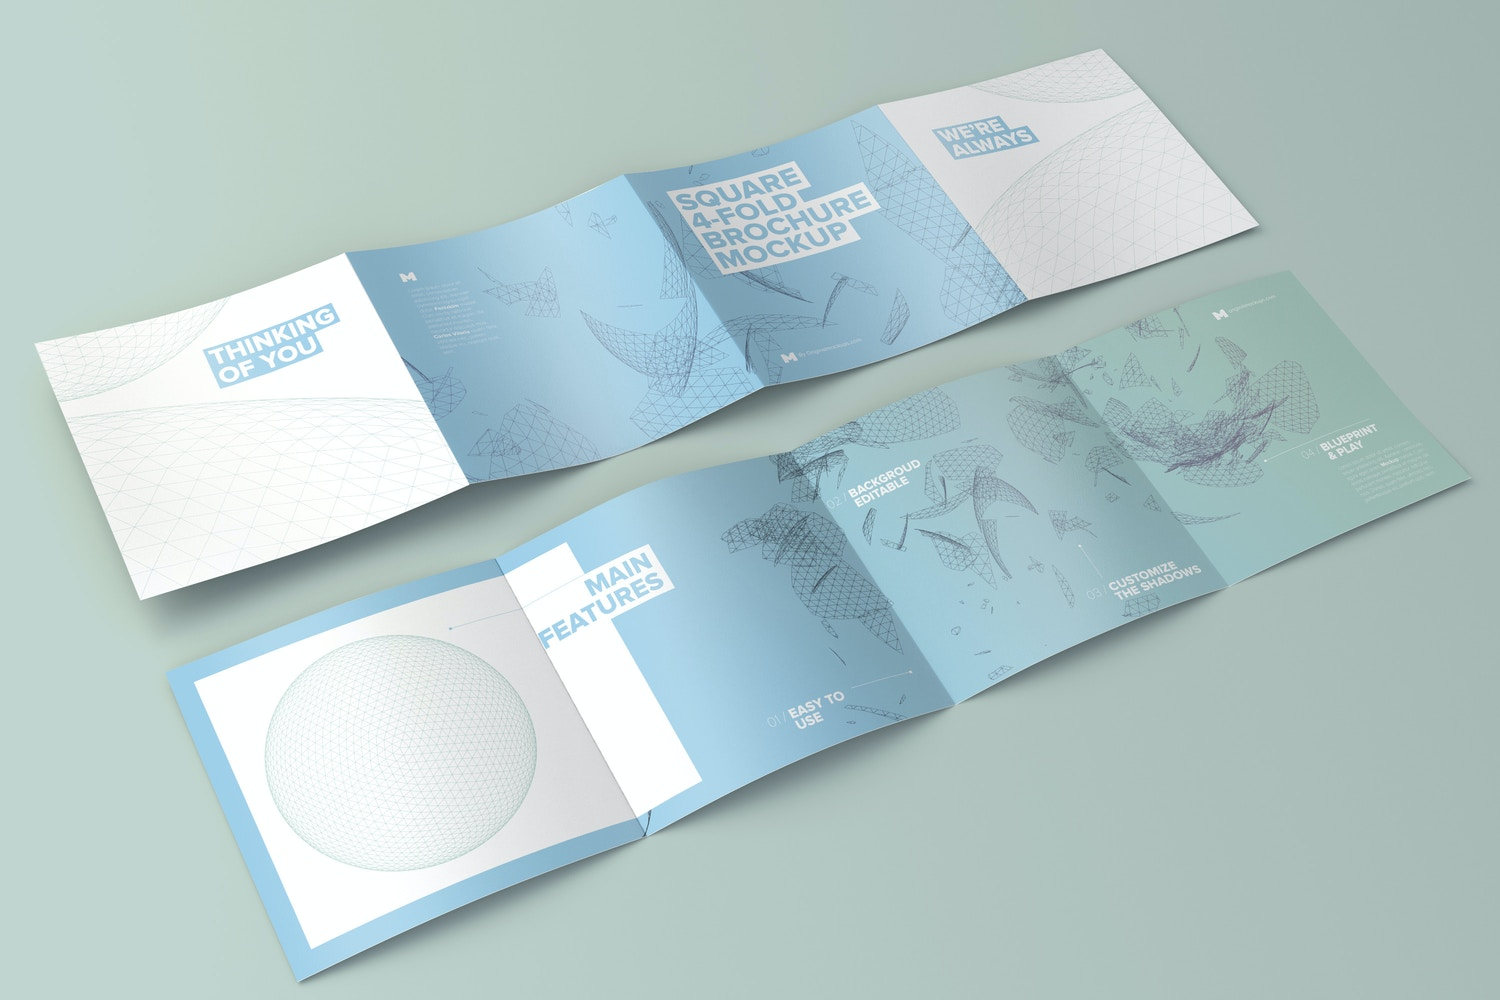 Spread Square 4-Fold Brochure Outside and Inside Mockup 01 - Custom Background